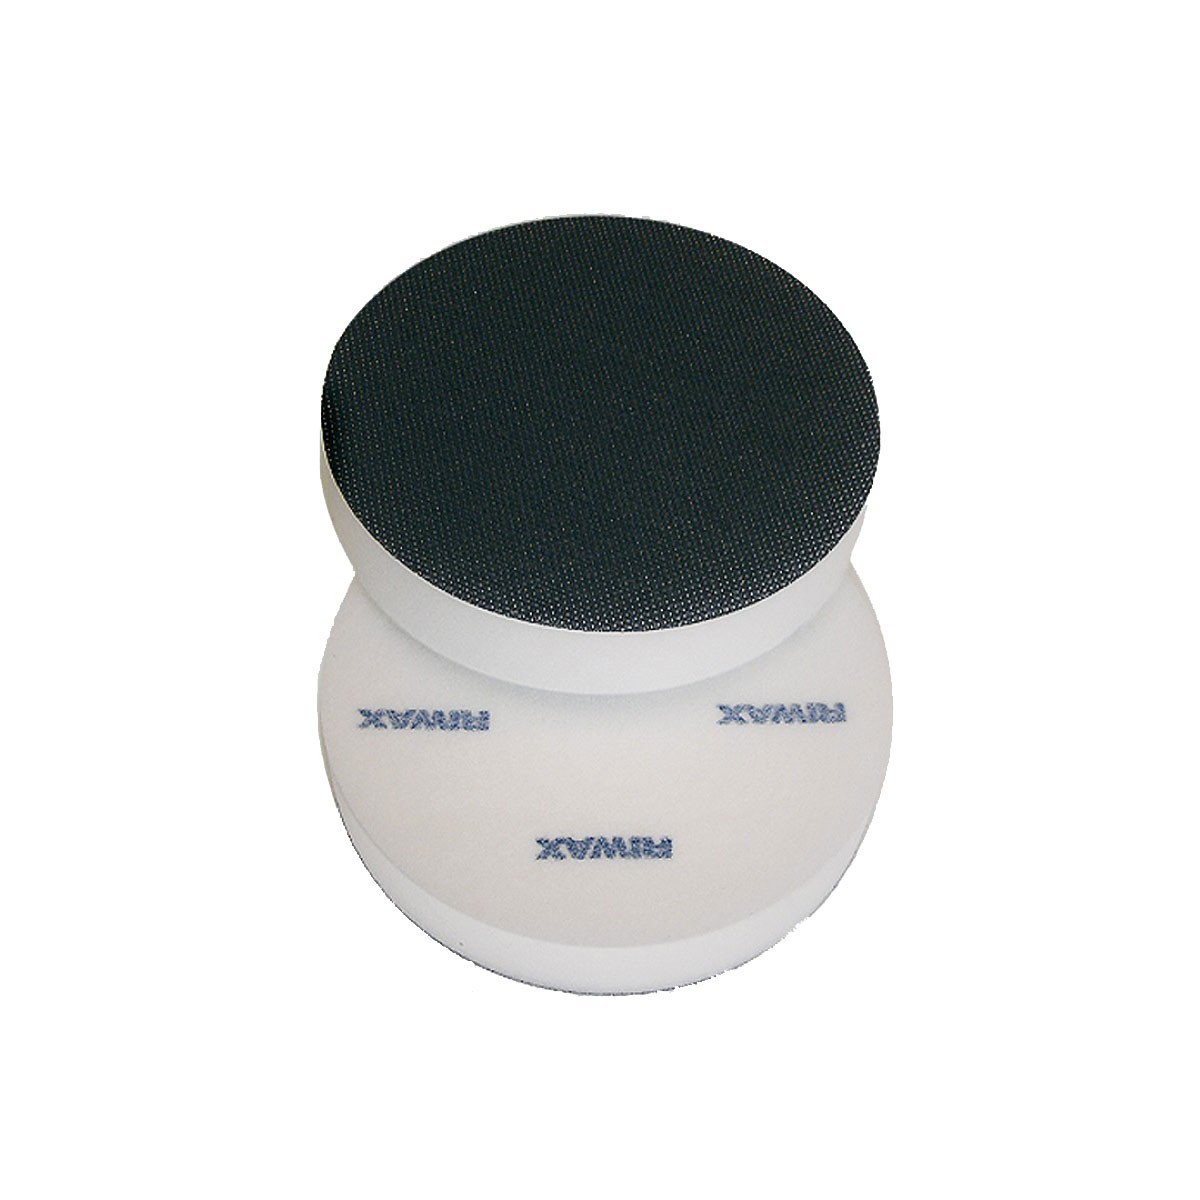 Riwax intermediate adapter for lambswool buffing pad